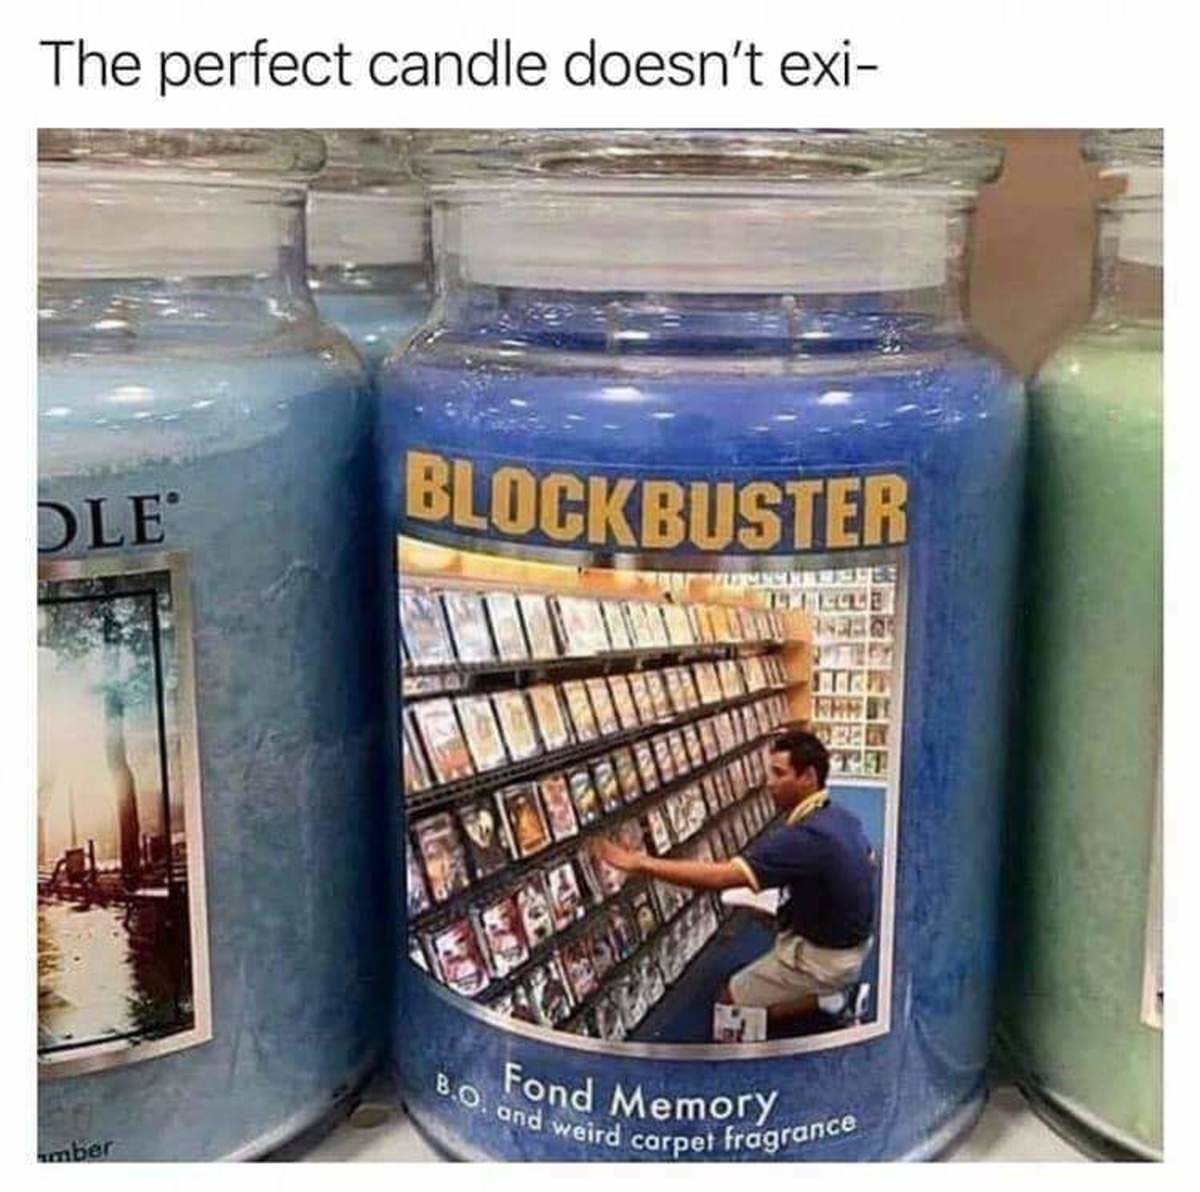 therapeutic aware intolerant Trolls. .. I miss blockbuster. Rente out Ironman 2 the fideo game once and it scuekd but at least I rented no tboght it.